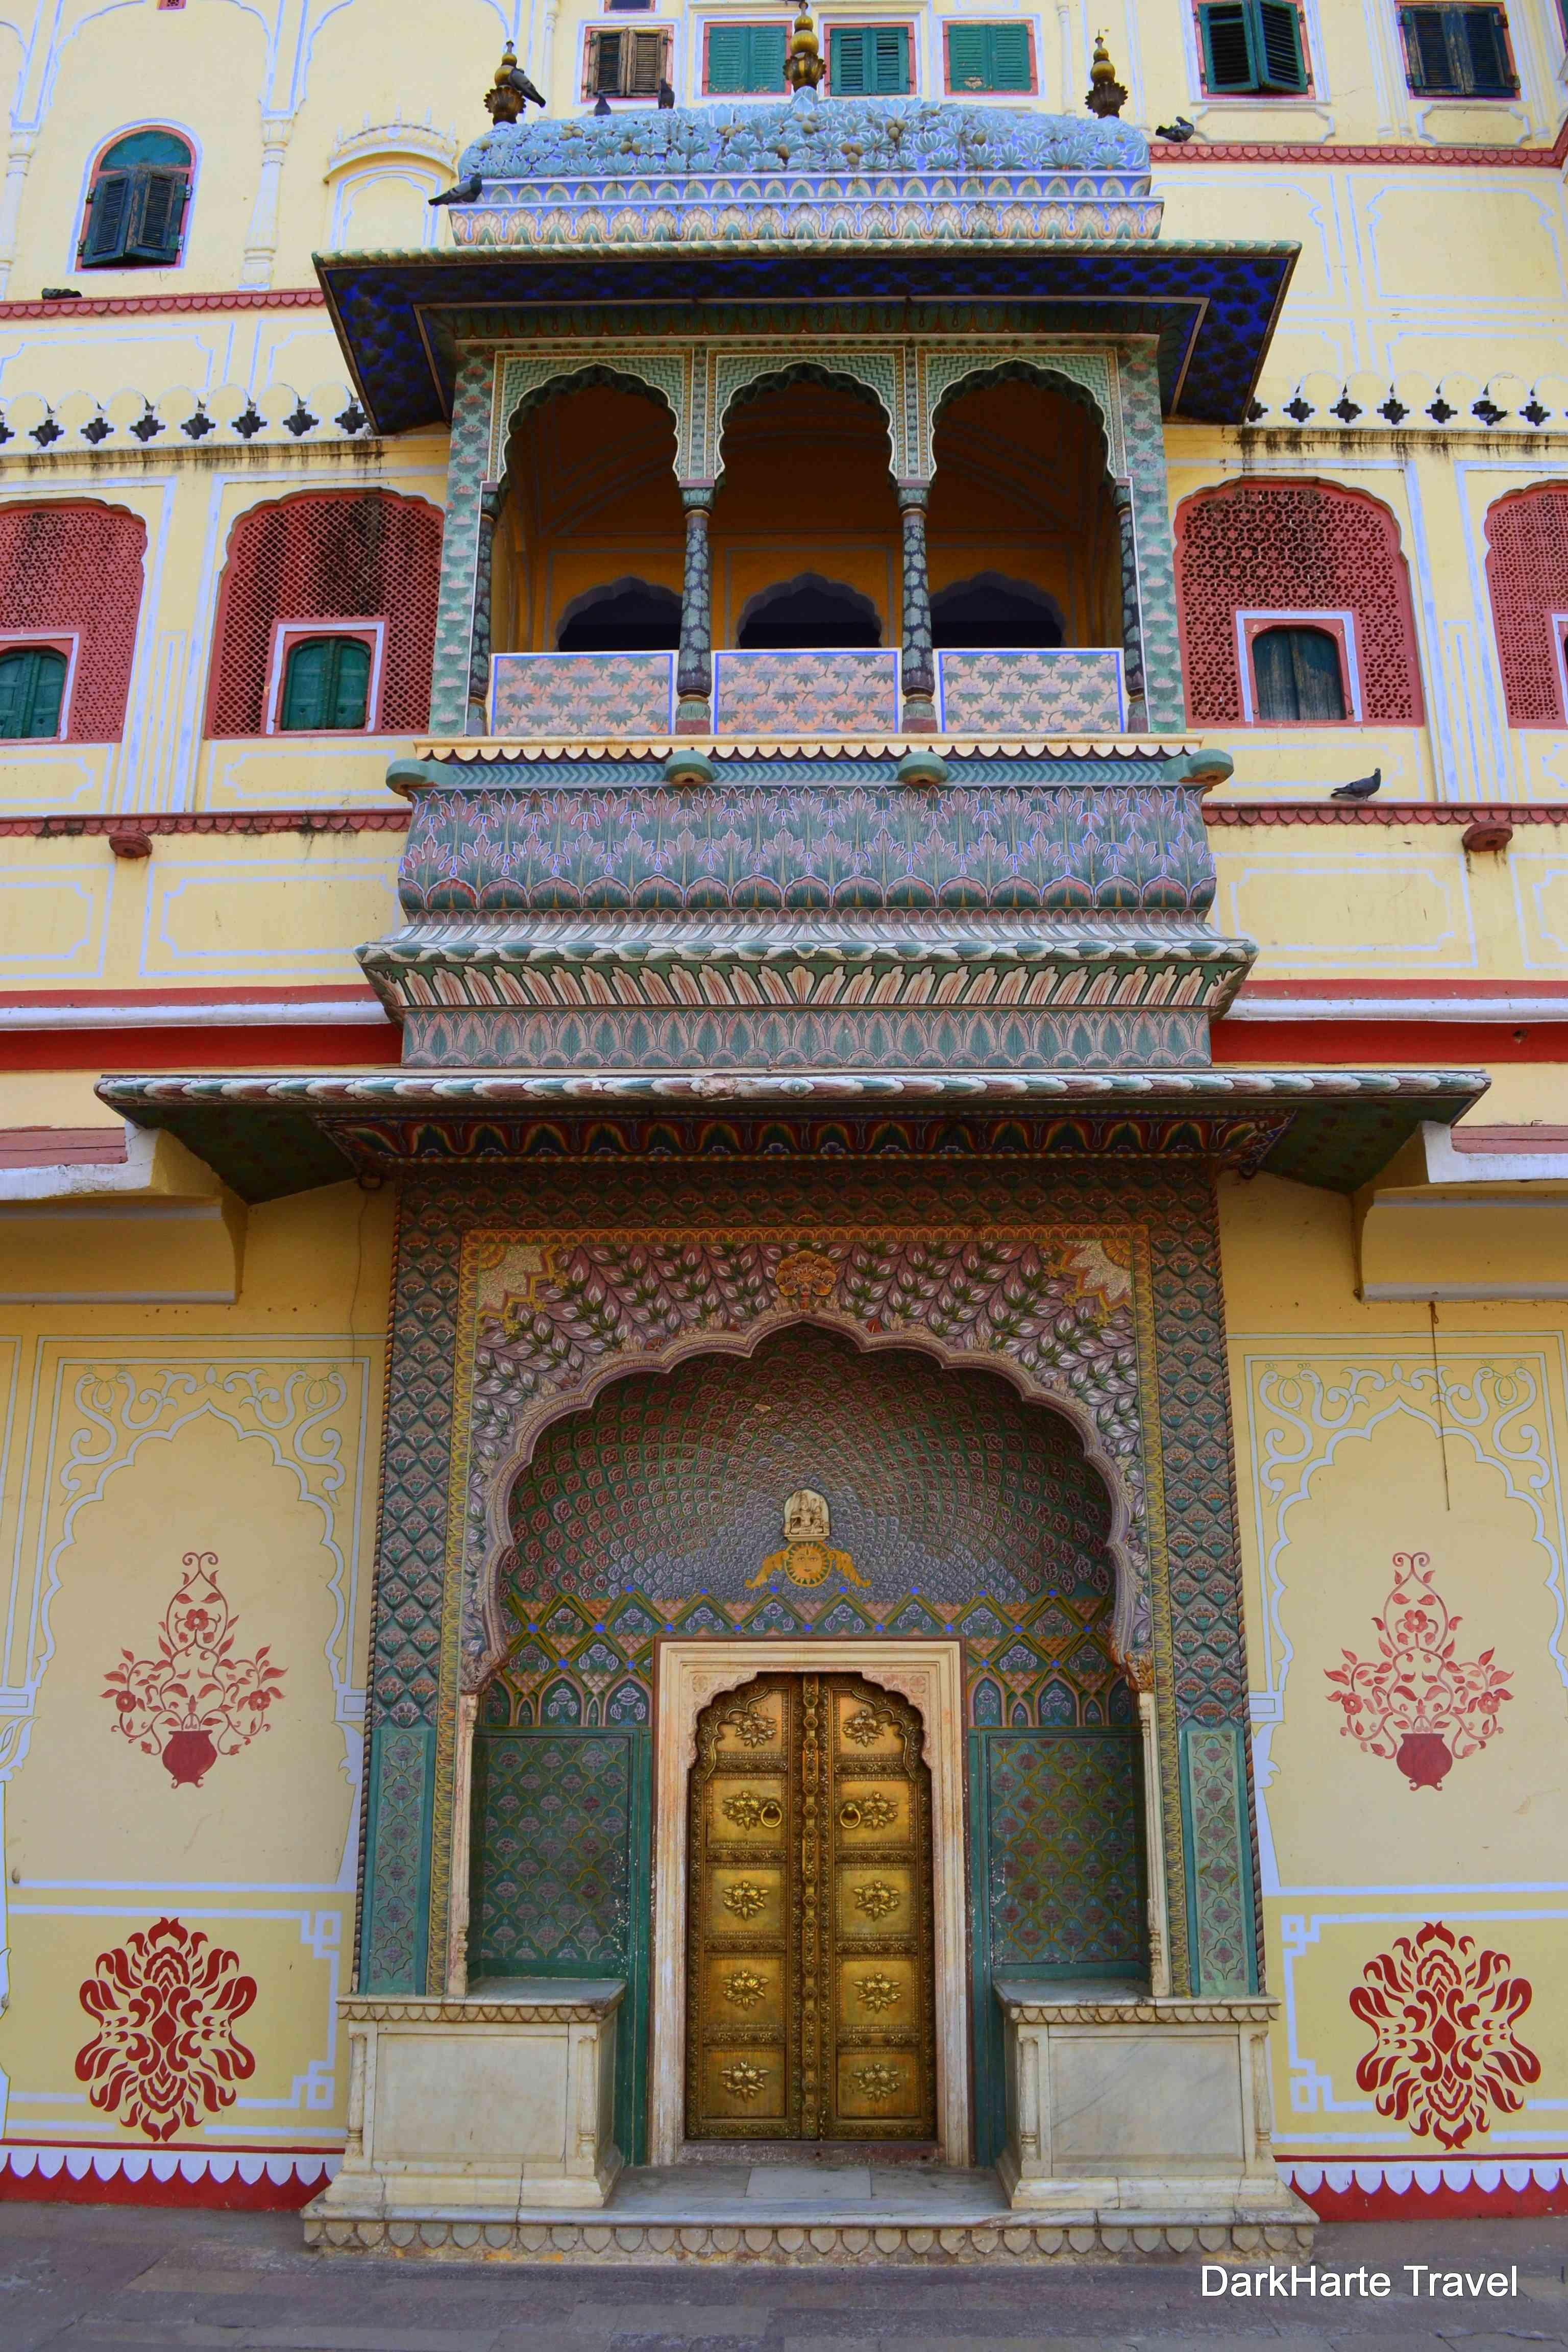 The Rose Gate represents winter and is dedicated to the Goddess Devi.